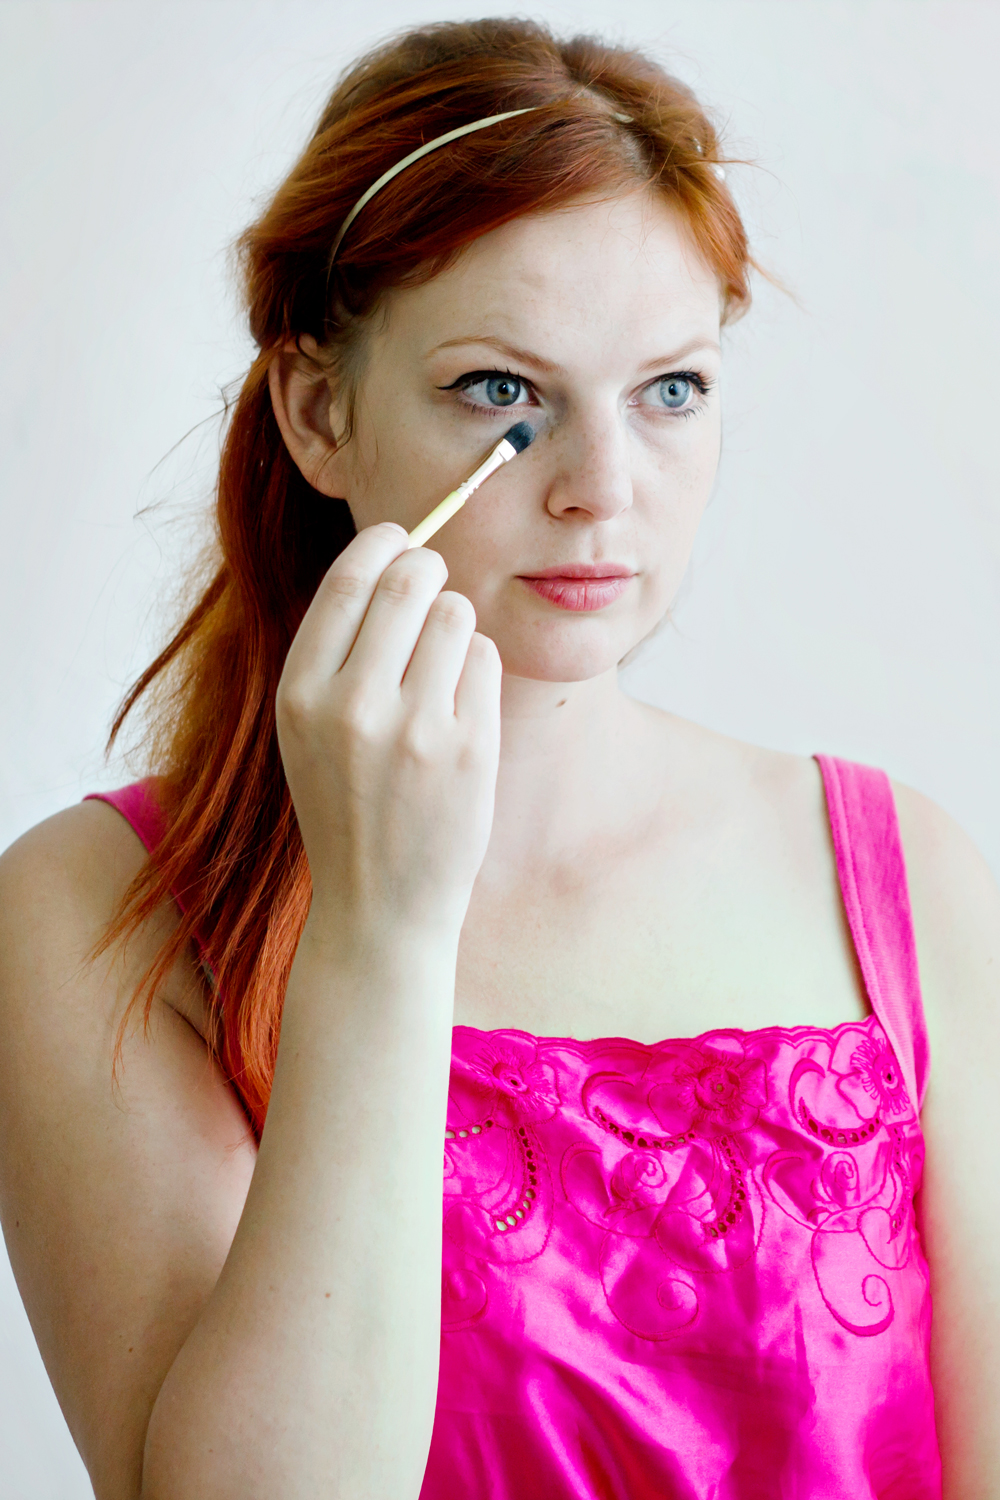 BEAUTY DIY | 5 Alternative Ways To Use Eyeshadow